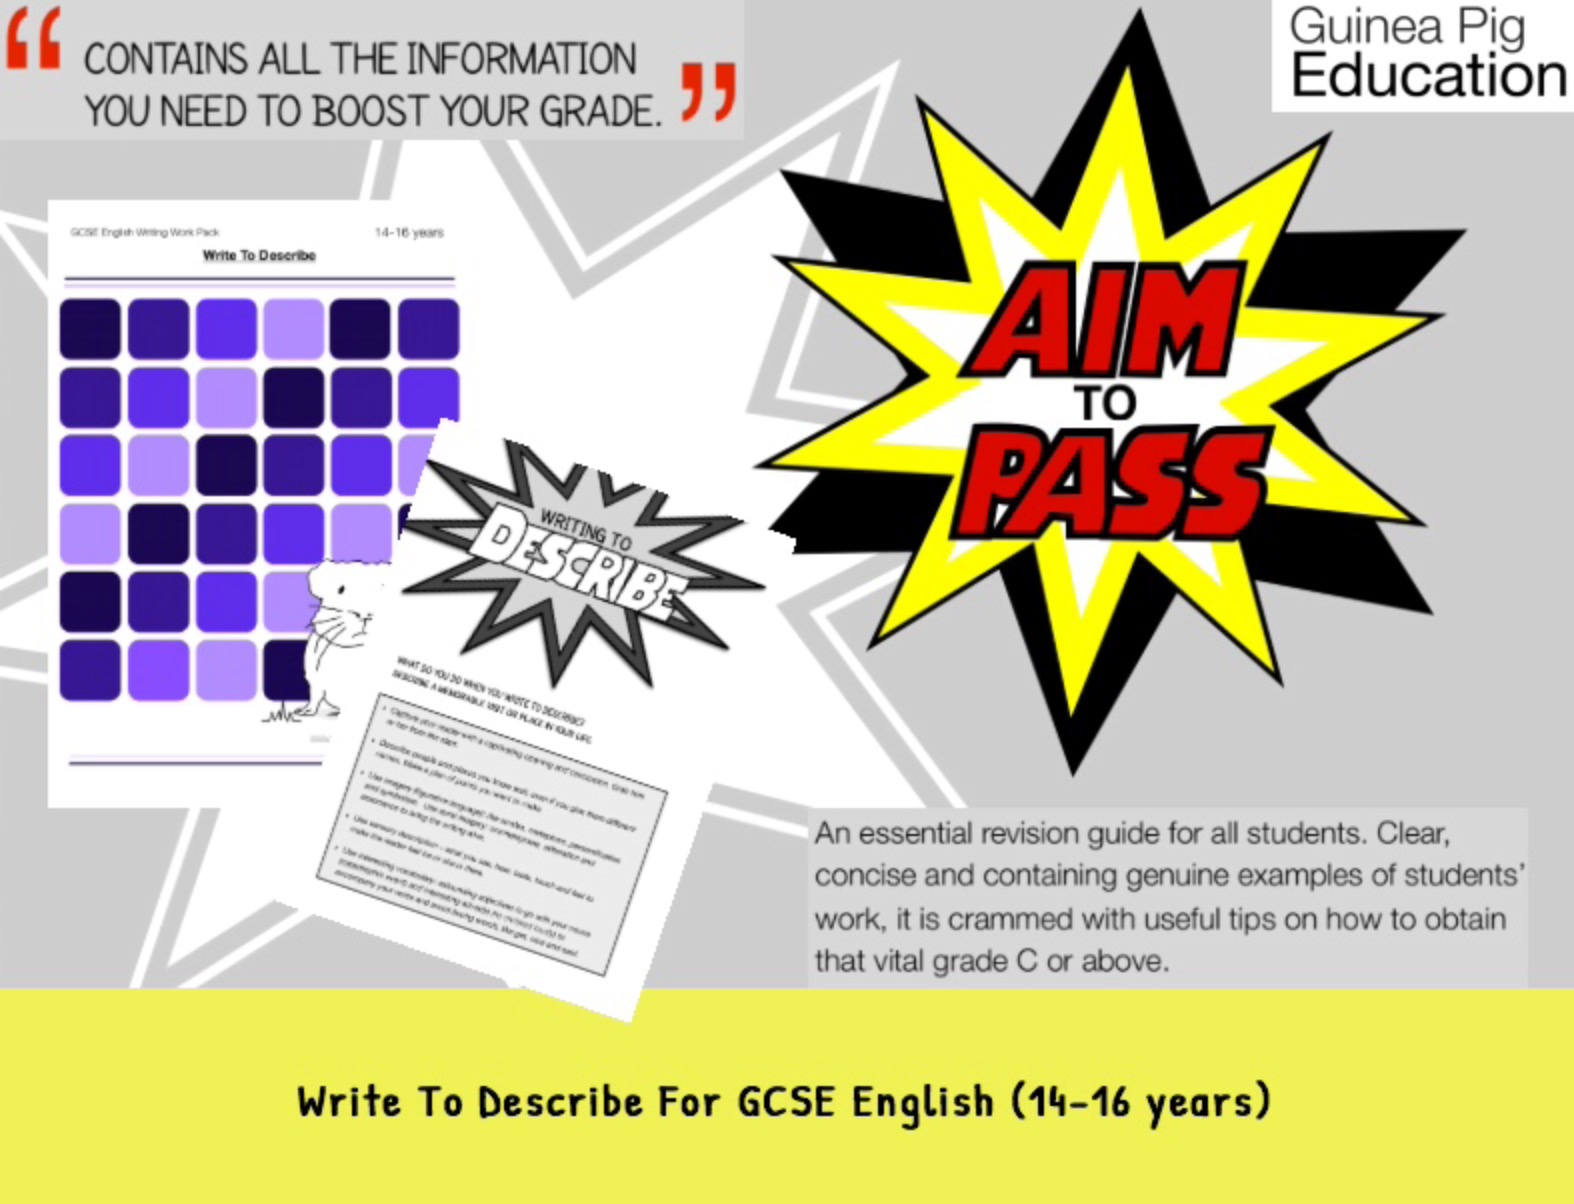 Write To Describe (Improve Your Grades At GCSE) (14-16 years)